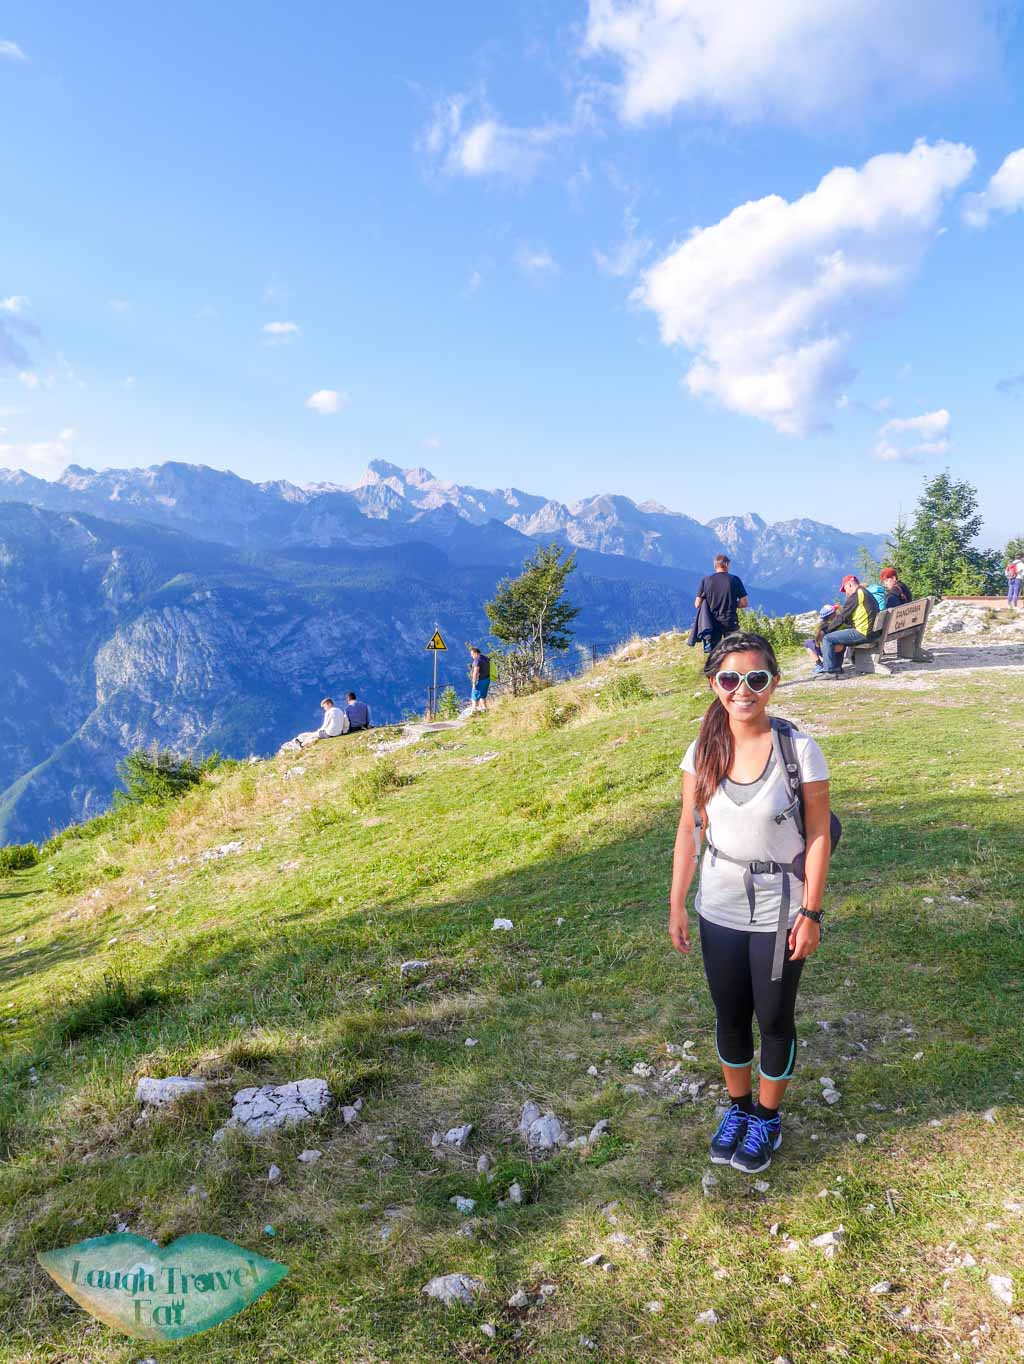 victory photo at the end of hike on mount vogel bohinj slovenia - laugh travel eat